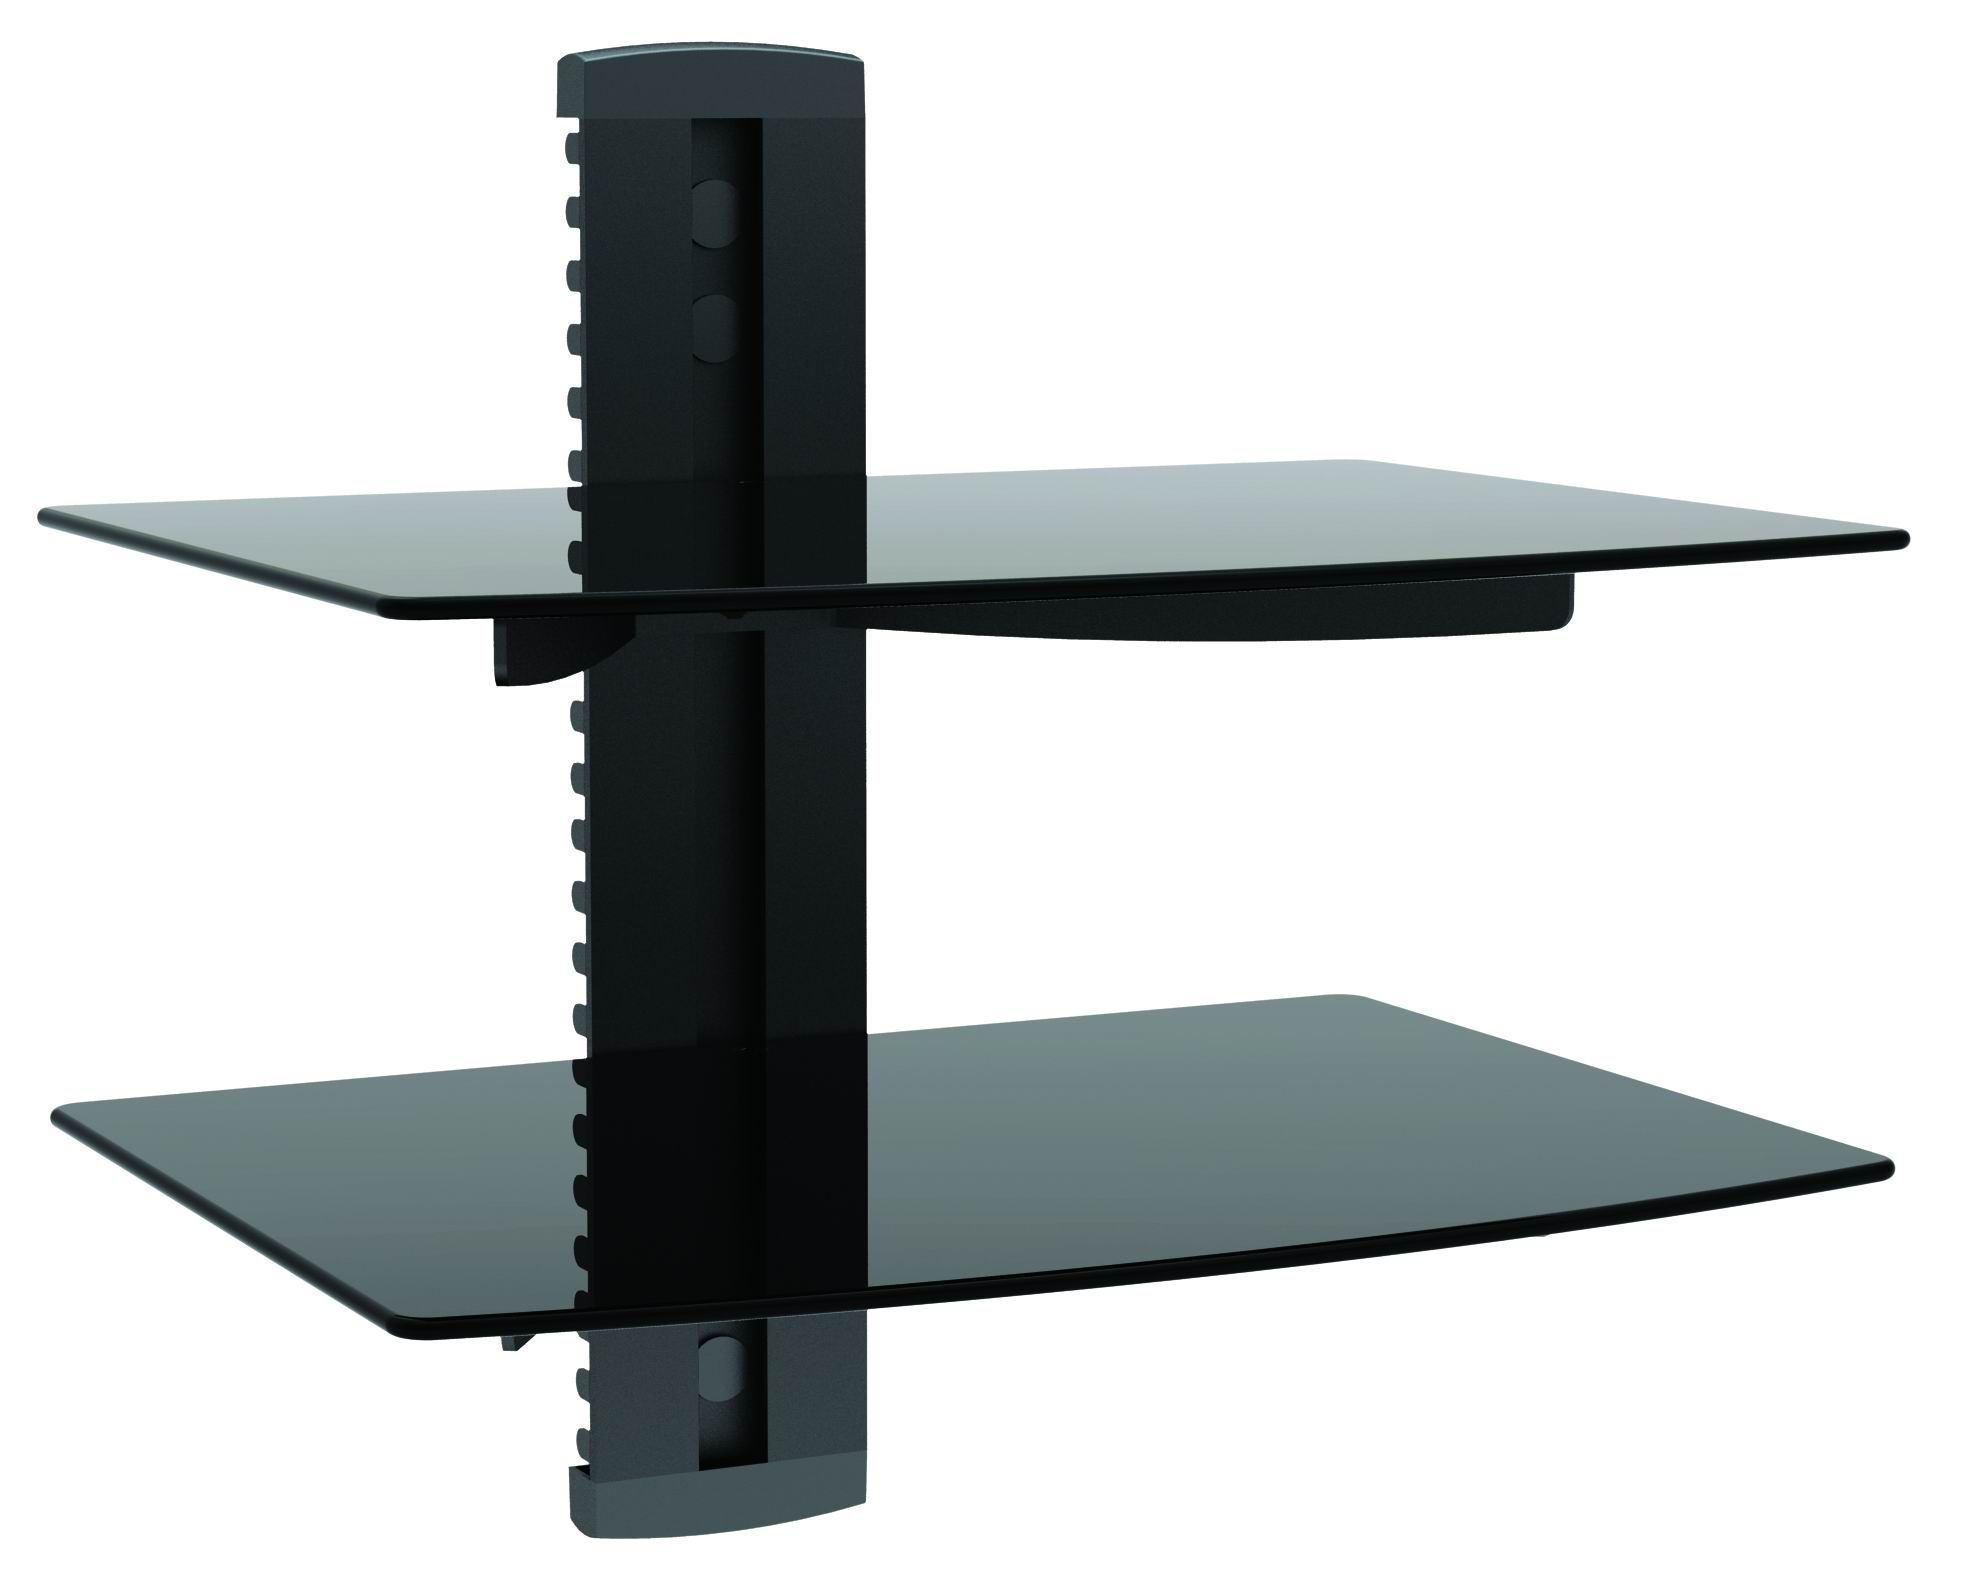 Swivel Wall Mount Shelf Dvd Player Http Bottomunion Com  # Muebles Huggies